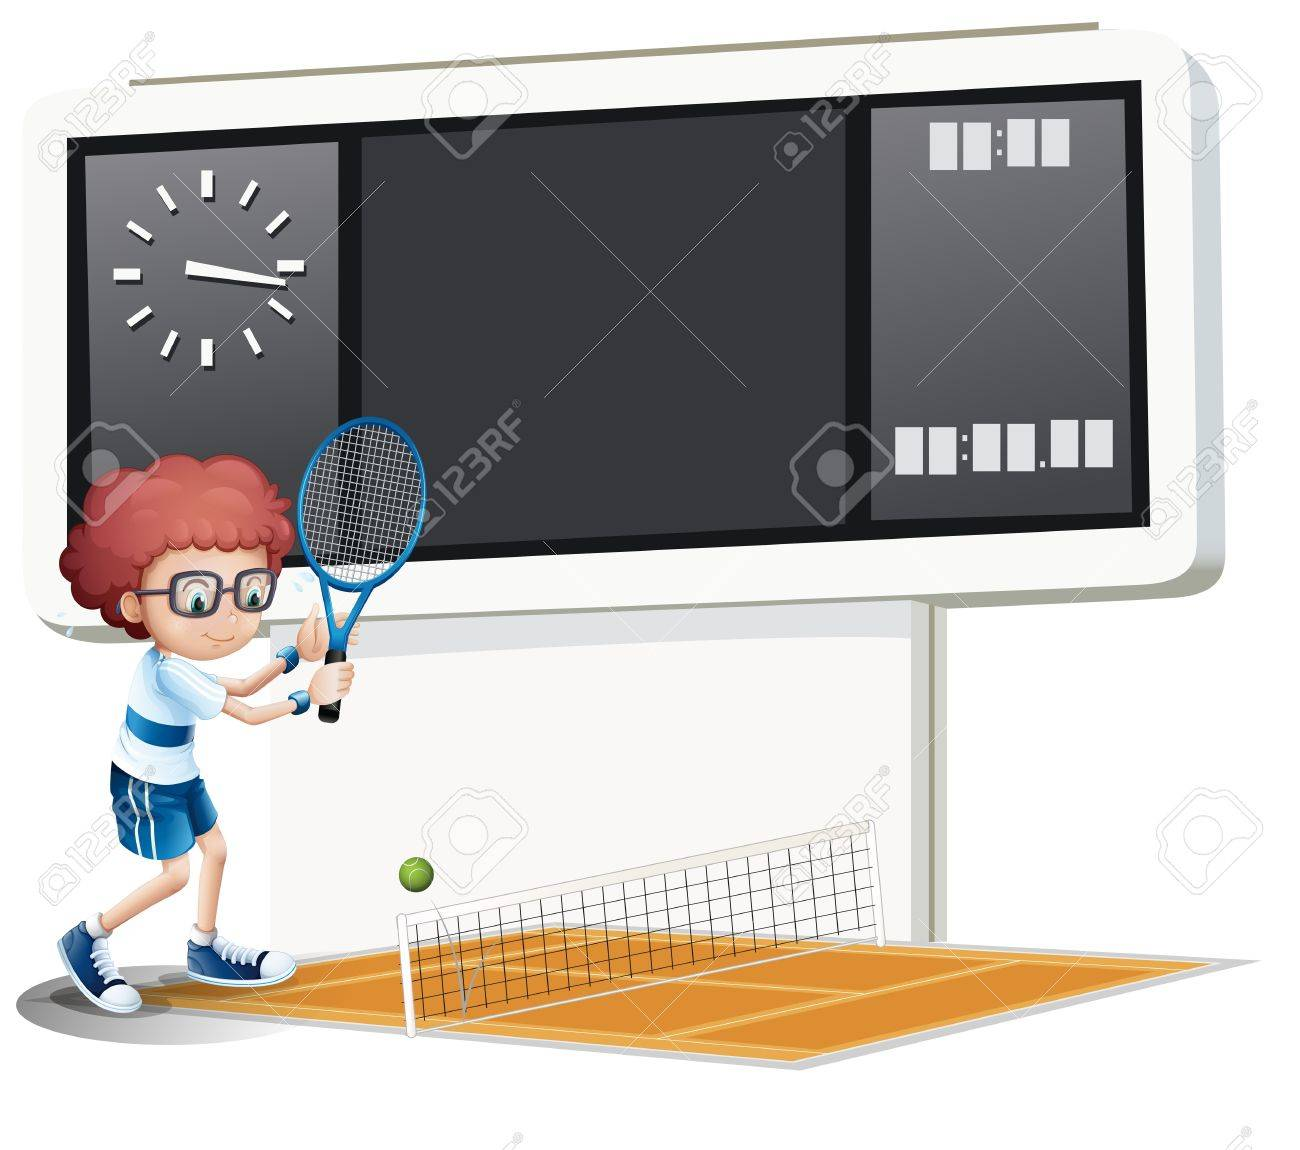 Illustration of a boy playing tennis on a white background Stock Vector - 18004950